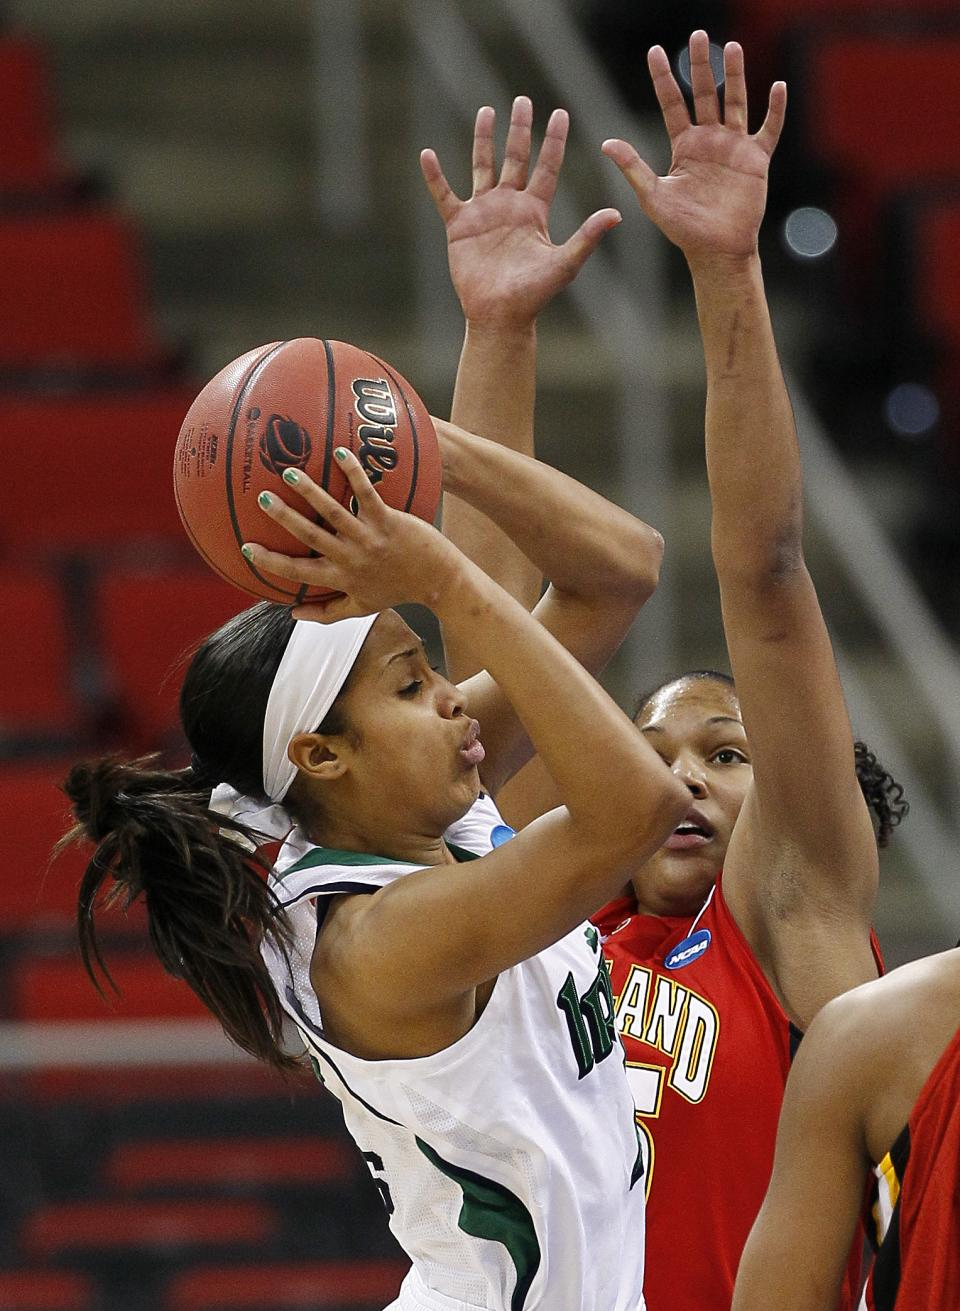 Notre Dame's Skylar Diggins, left, shoots while Maryland's Alyssa Thomas defends during the first half of an NCAA women's college basketball tournament regional final in Raleigh, N.C., Tuesday, March 27, 2012. (AP Photo/Gerry Broome)